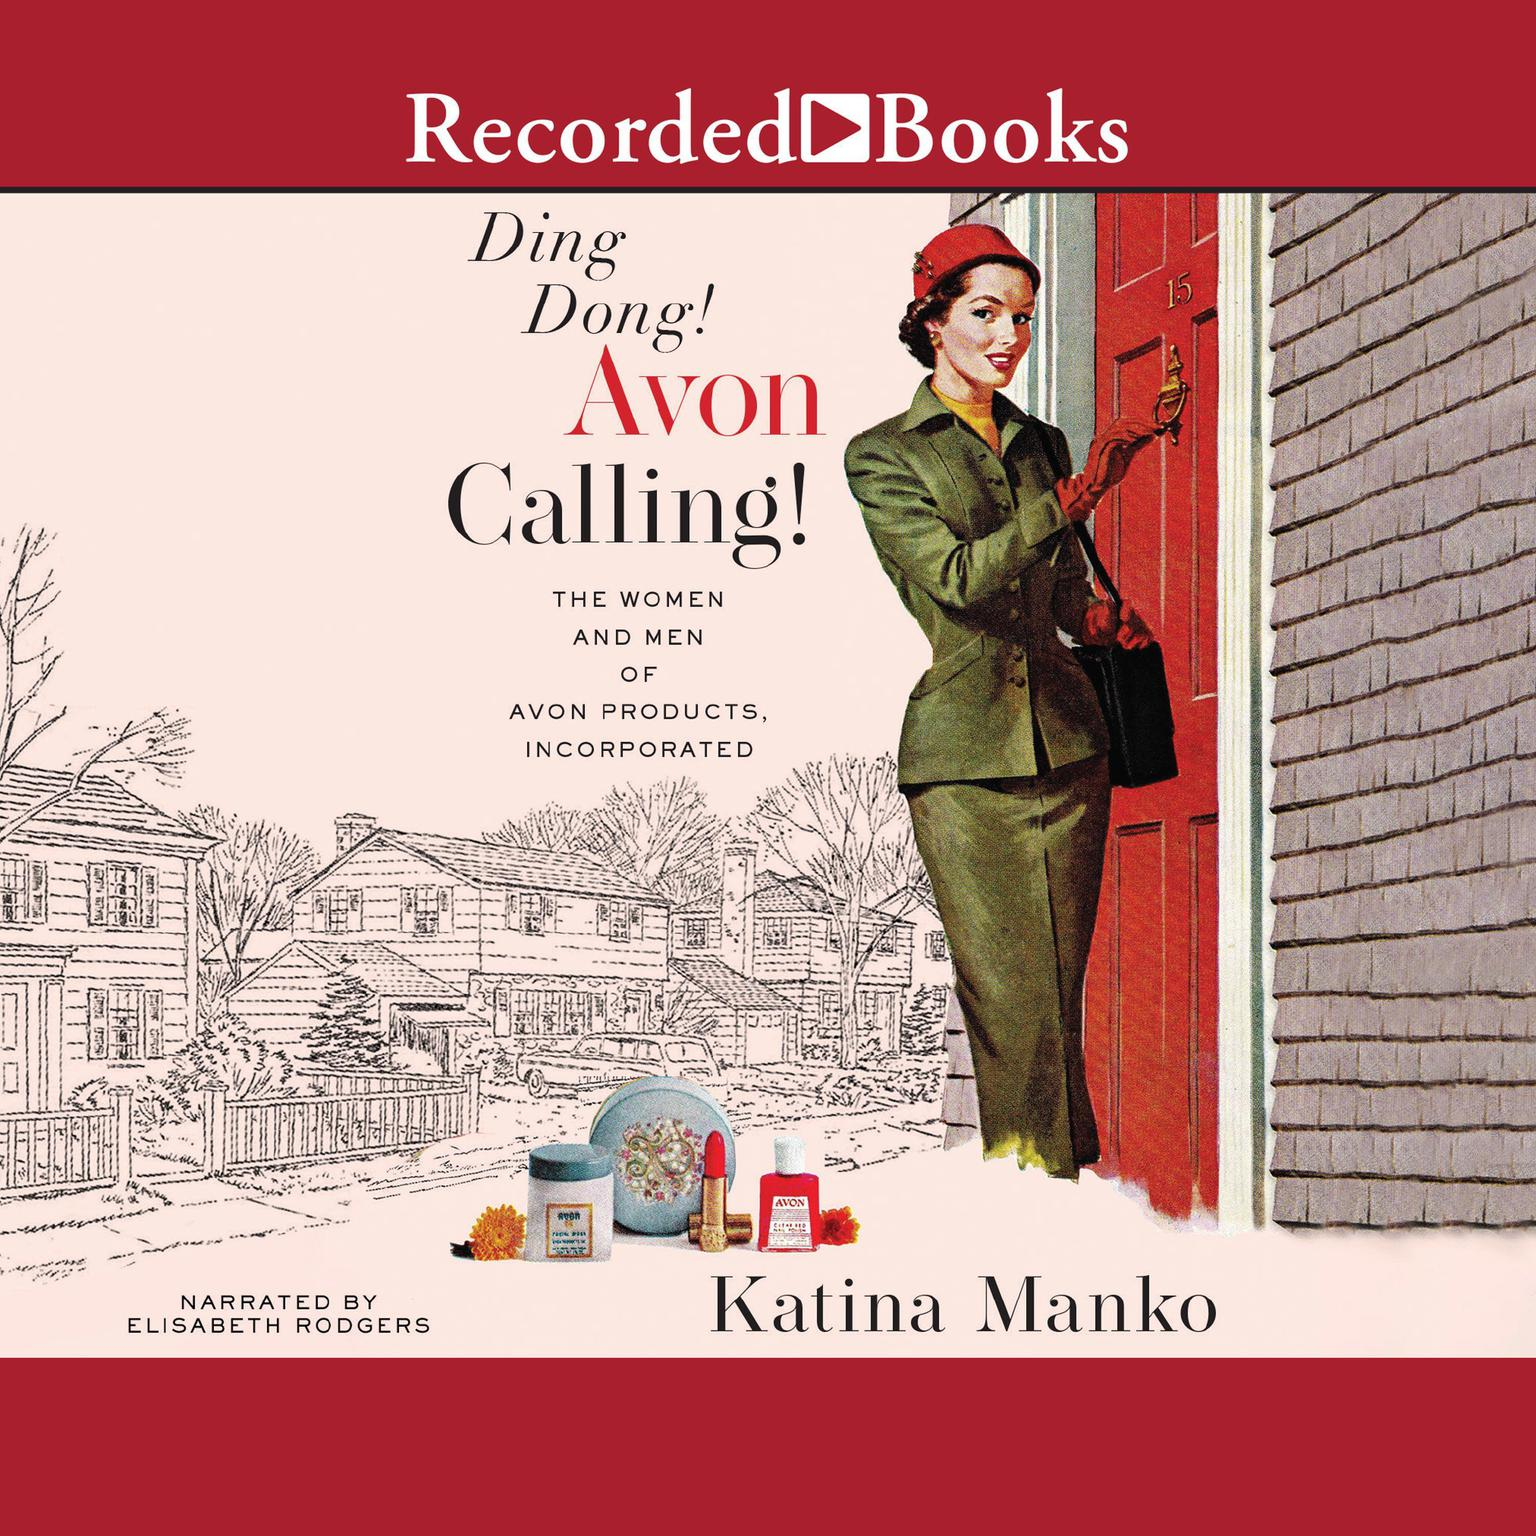 Ding Dong! Avon Calling!: The Women and Men of Avon Products, Incorporated Audiobook, by Katina Manko